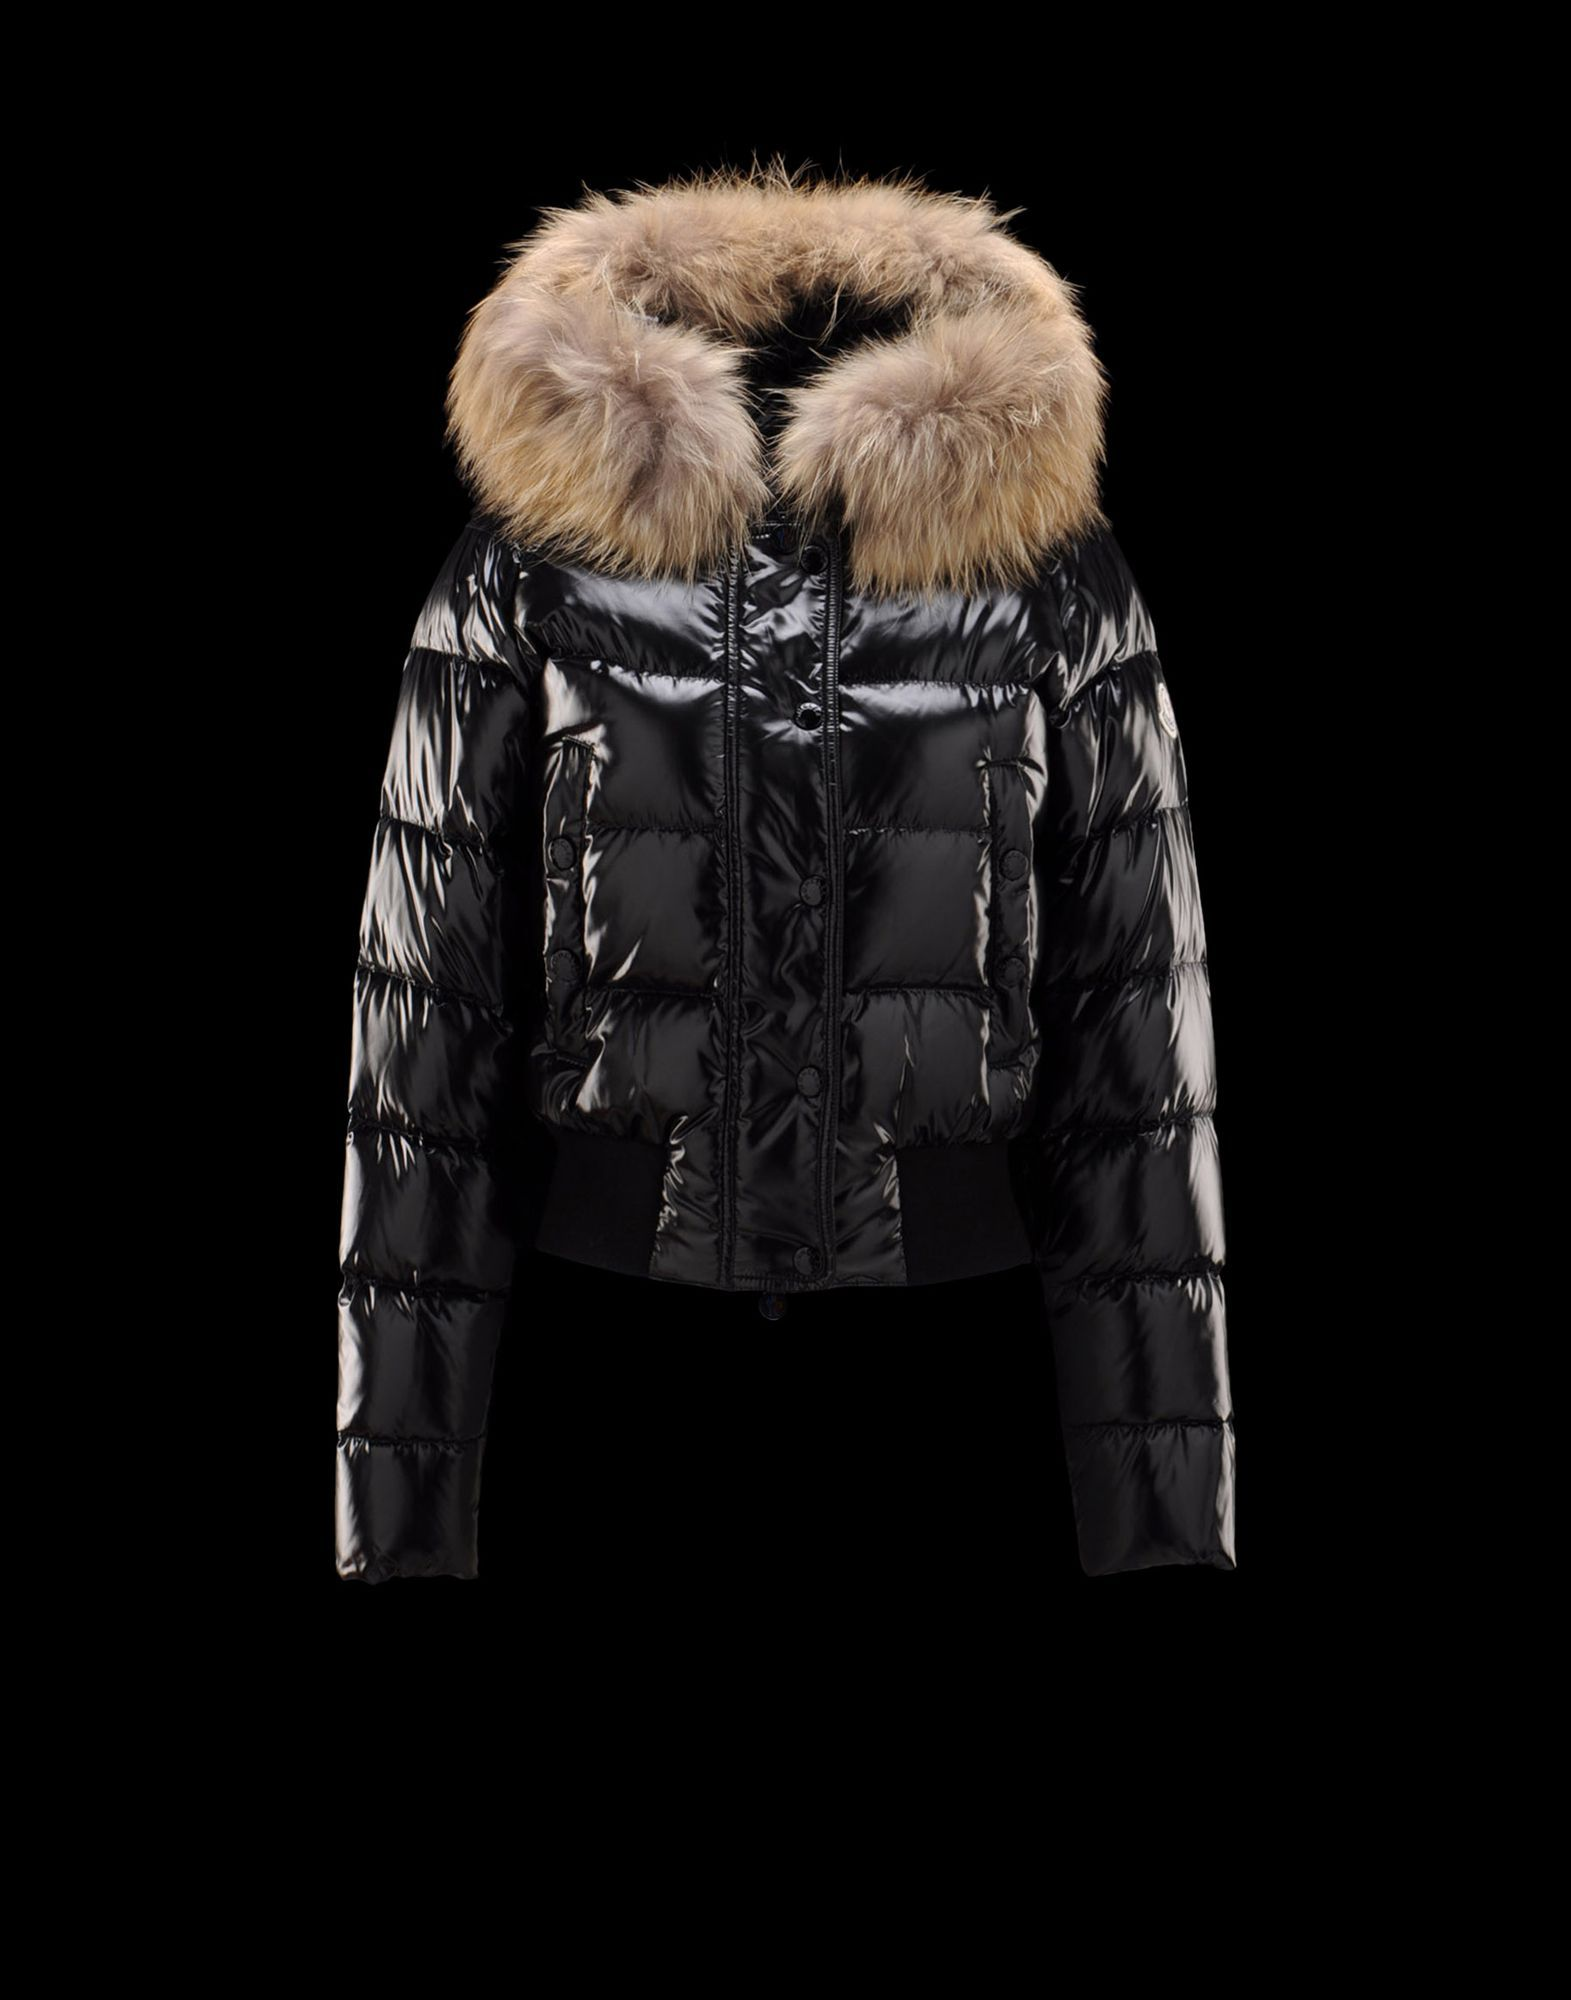 f349c197464 Jacket Women Moncler - Original products on store.moncler.com | for ...